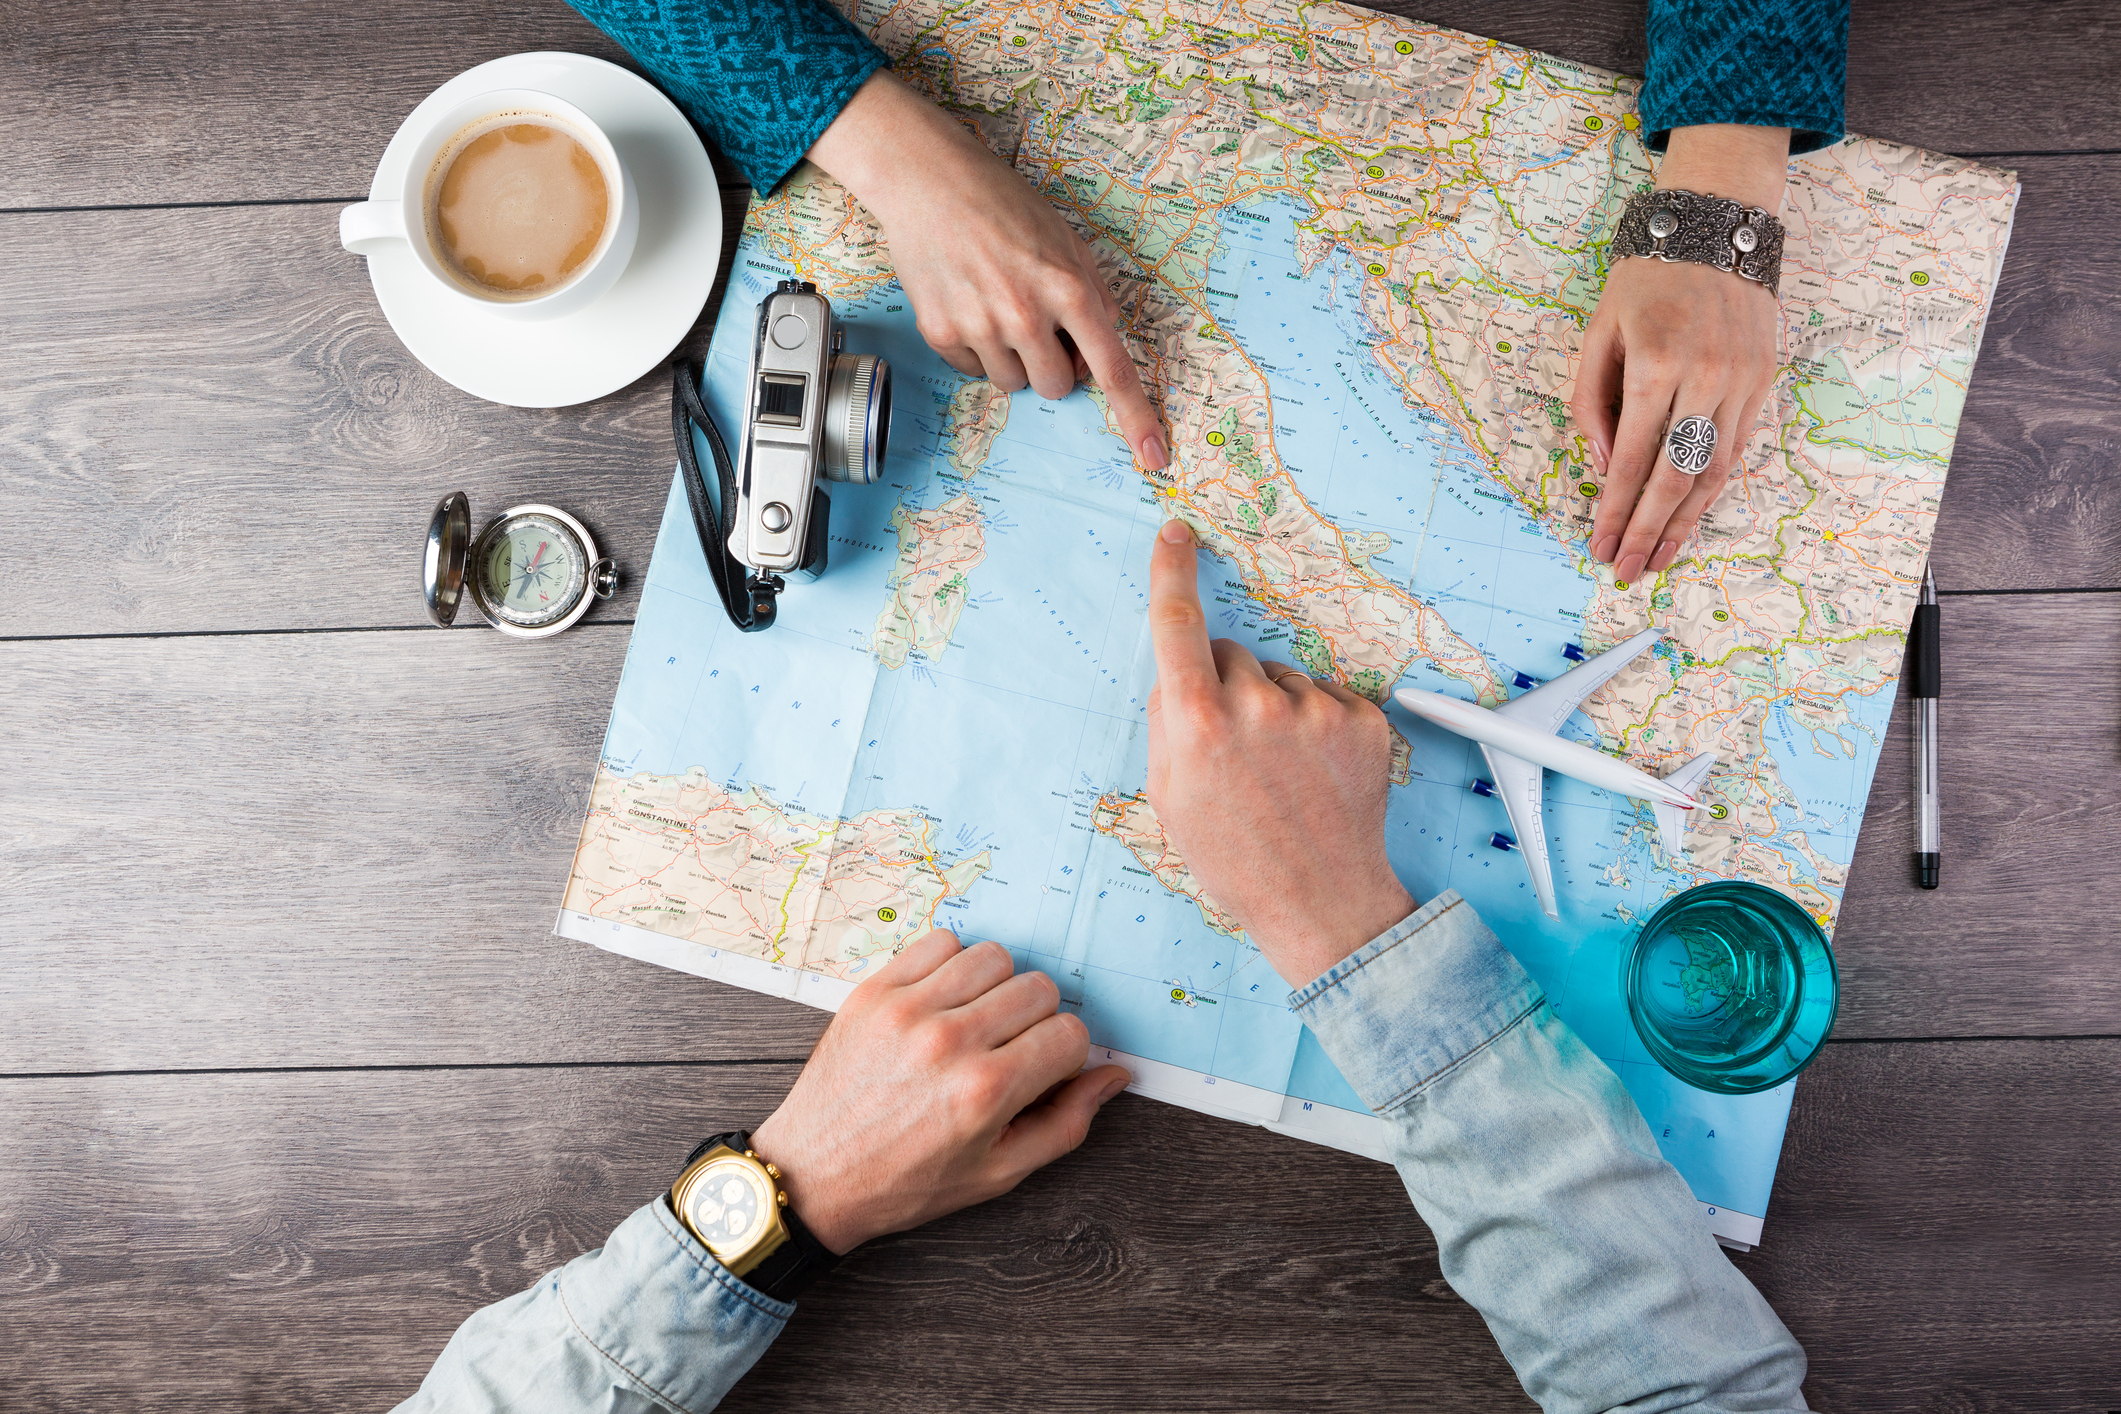 We definitely don't use a compass while trip planning... Or a model plane.